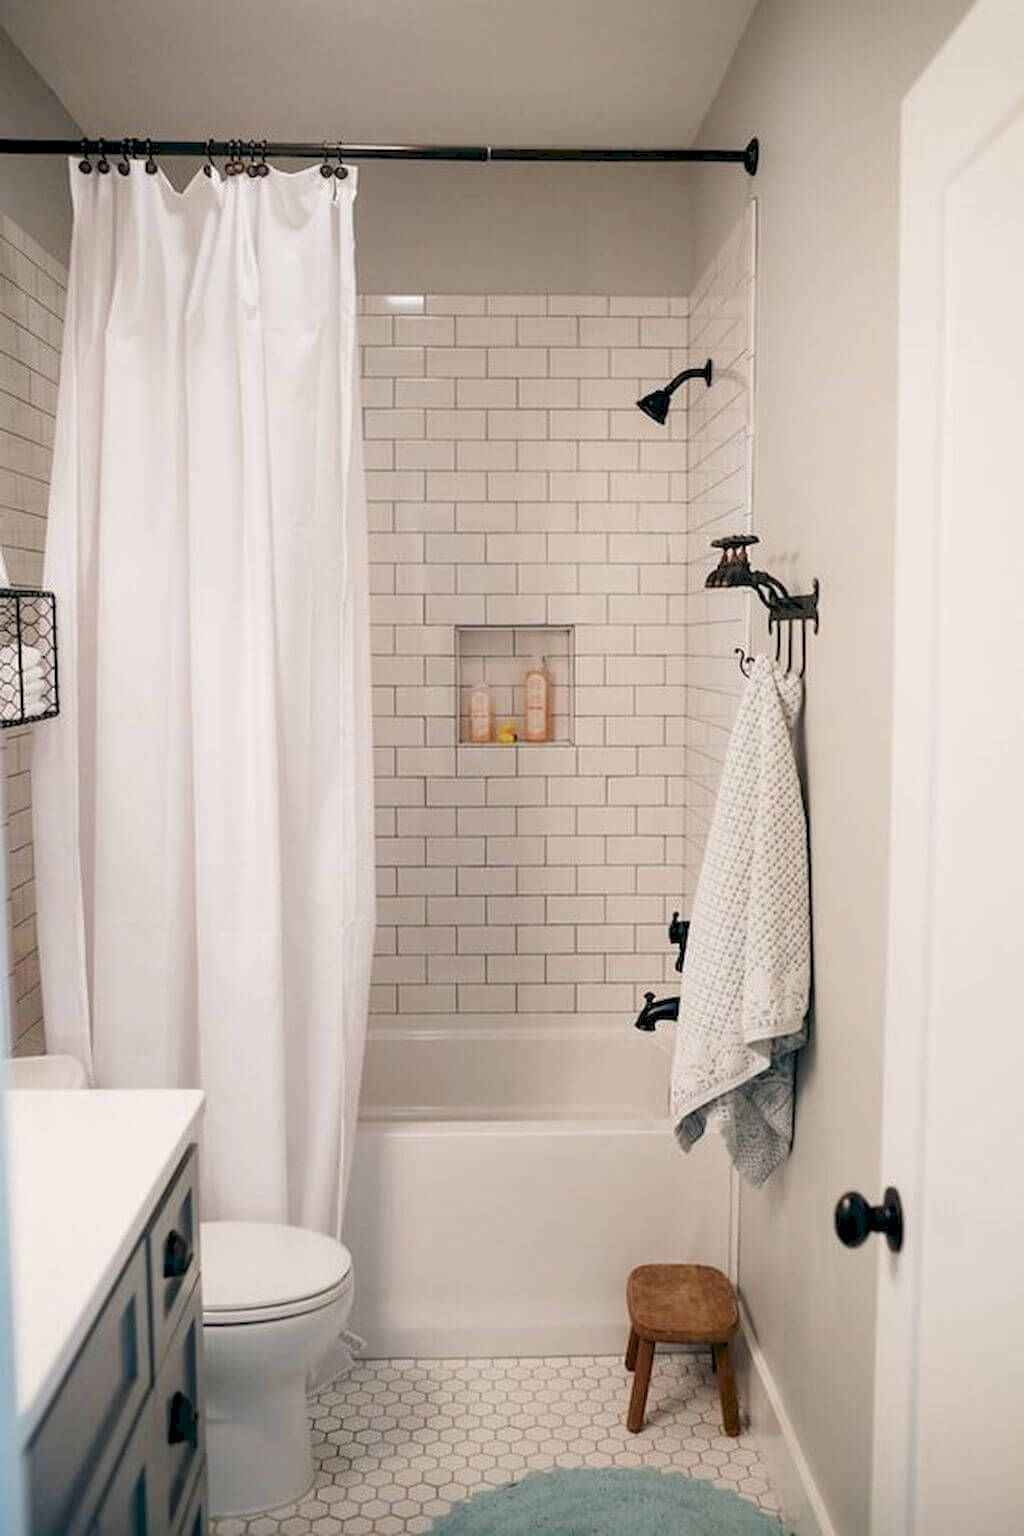 111 awesome small bathroom remodel ideas on a budget (63)